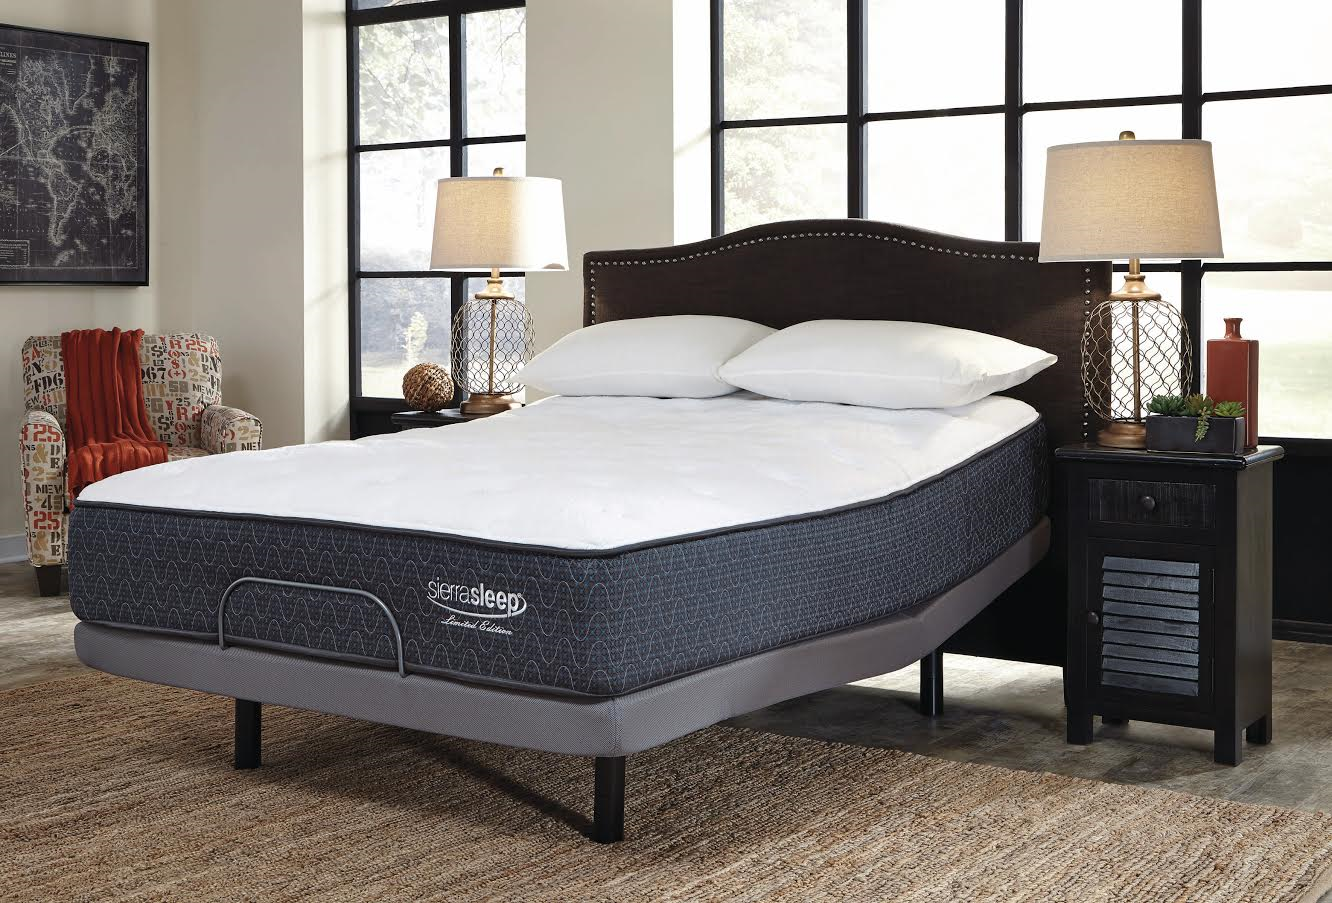 Where To Rent Adjustable Beds : Rent ashley adjustable bed with mattress may only